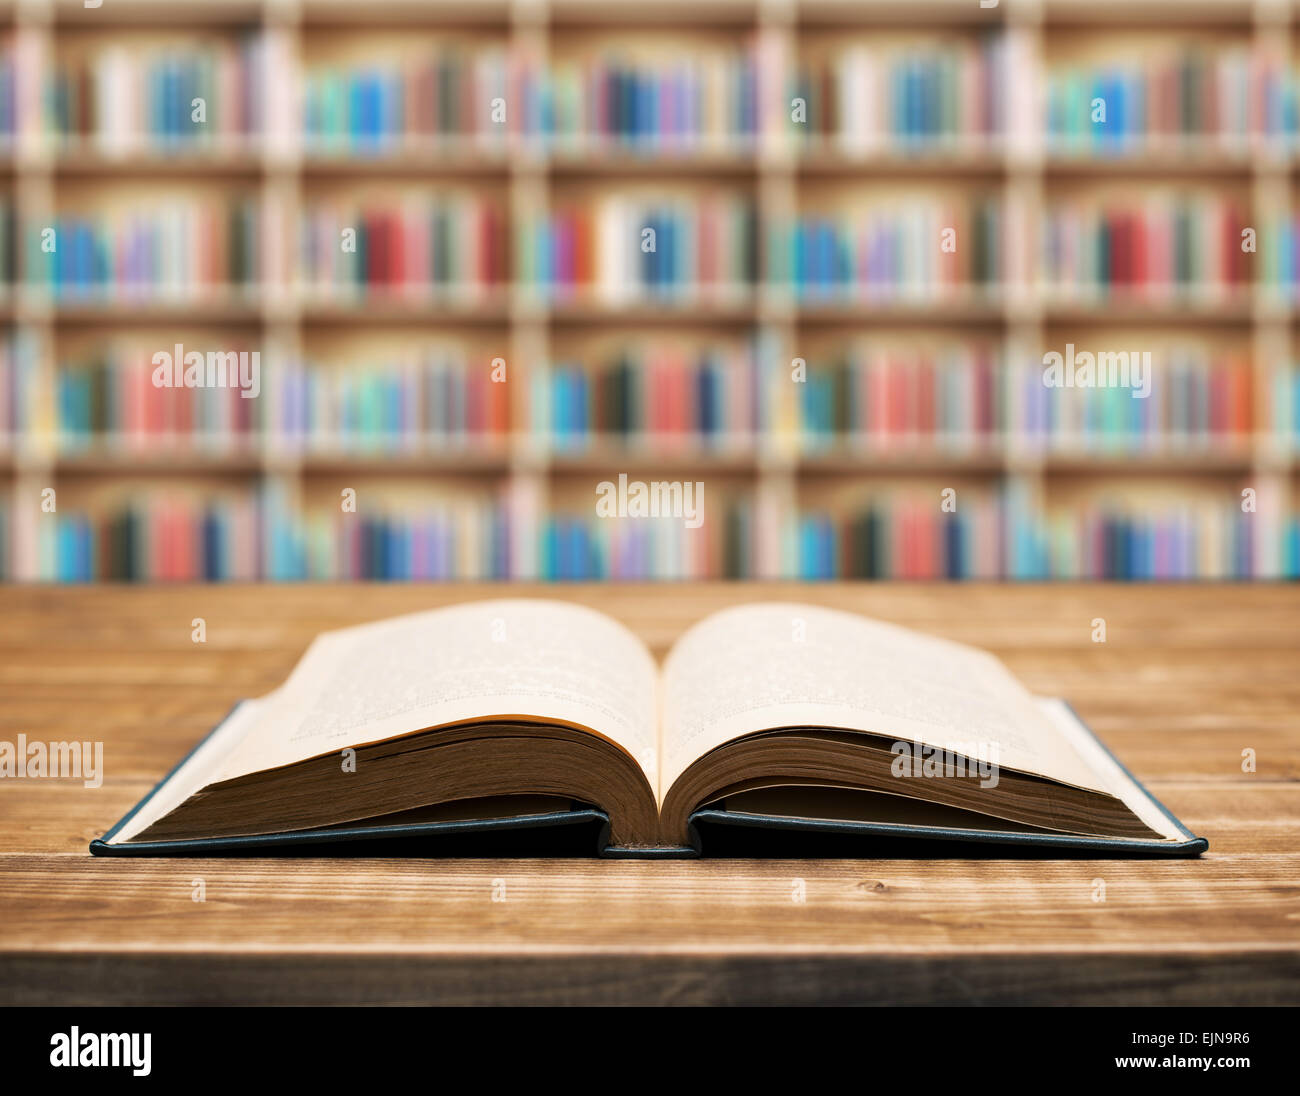 Open book on the table in shallow focus. - Stock Image